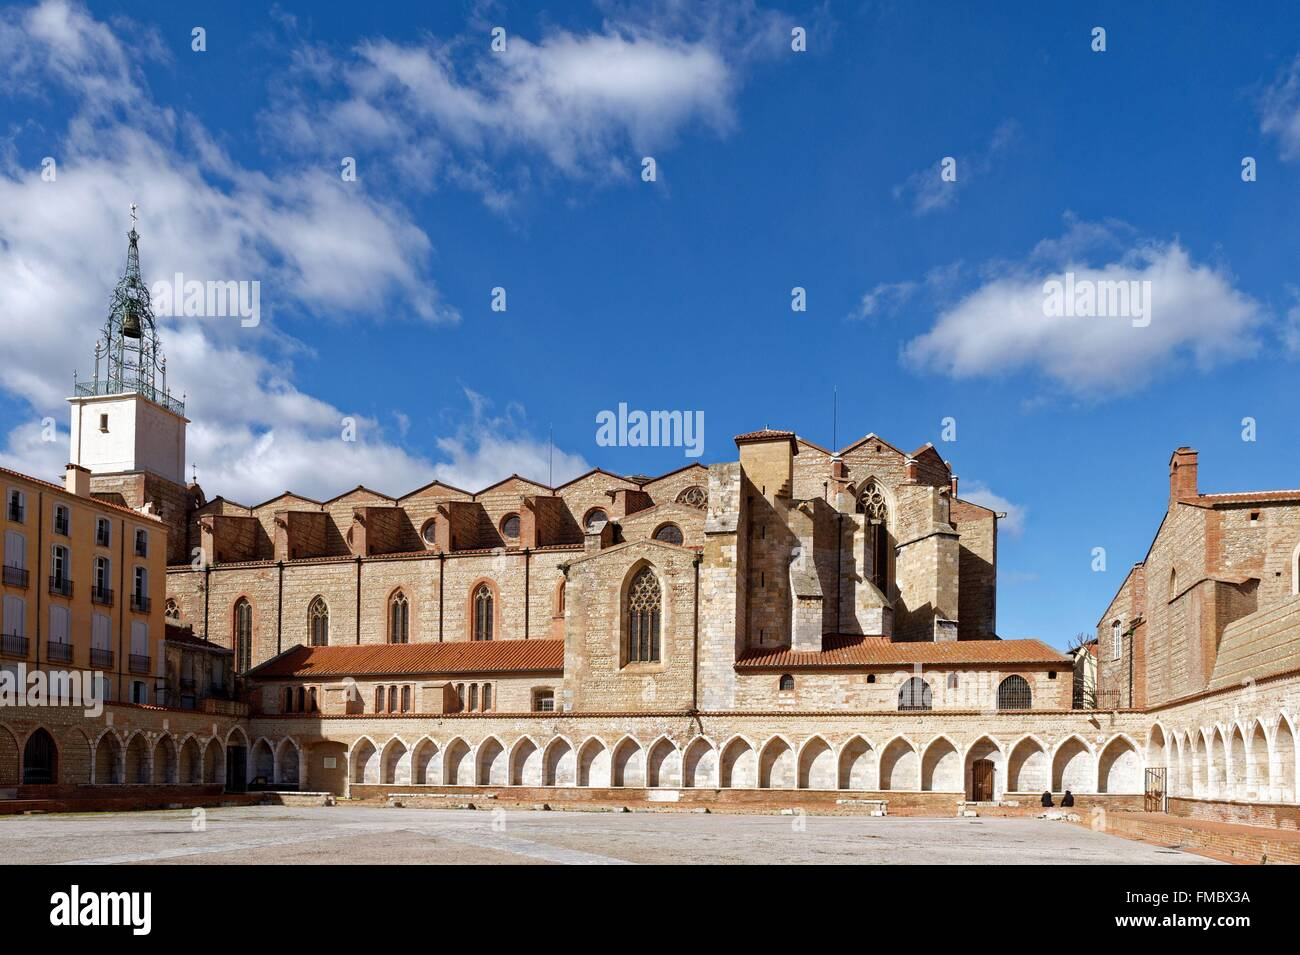 France, Pyrenees Orientales, Perpignan, Saint Jean cathedral and the Campo Santo, the only cloister cemetery in - Stock Image